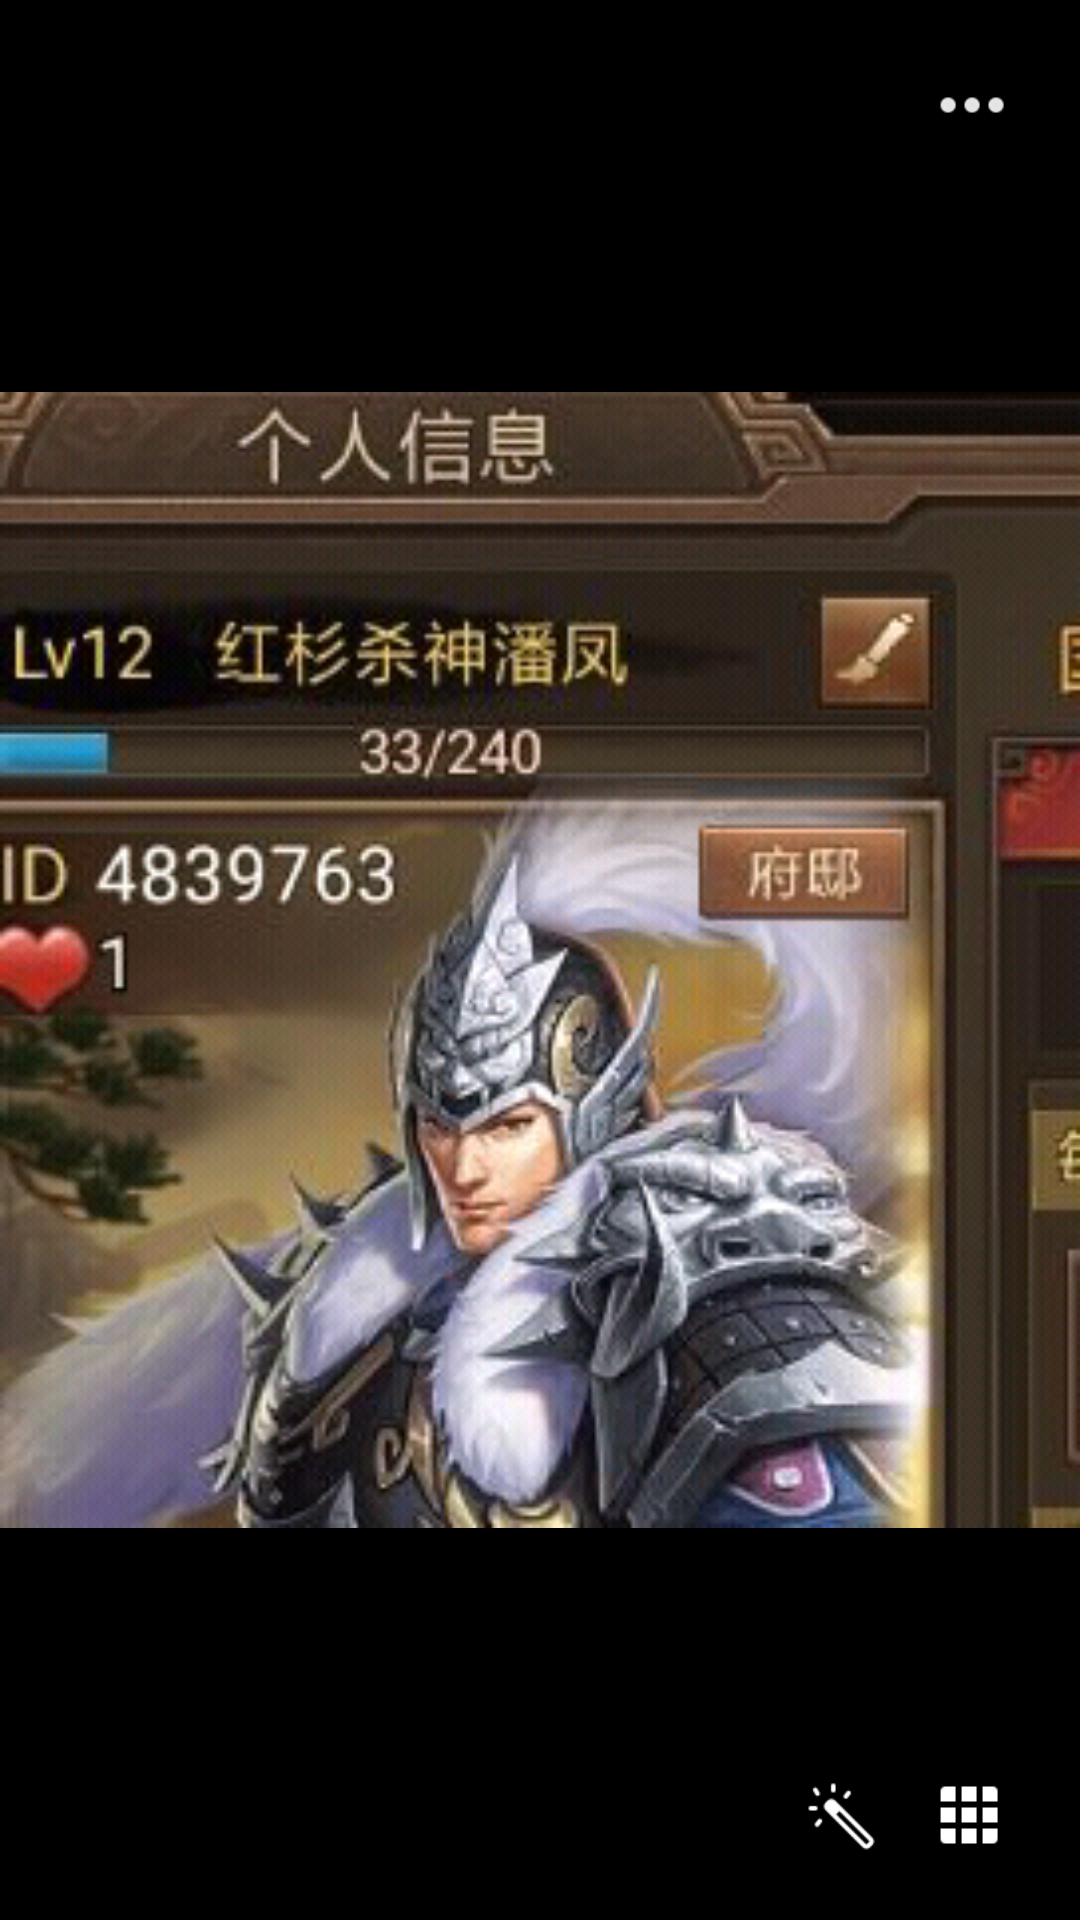 Screenshot_2018-11-16-15-42-18-115_com.tencent.mobileqq.png